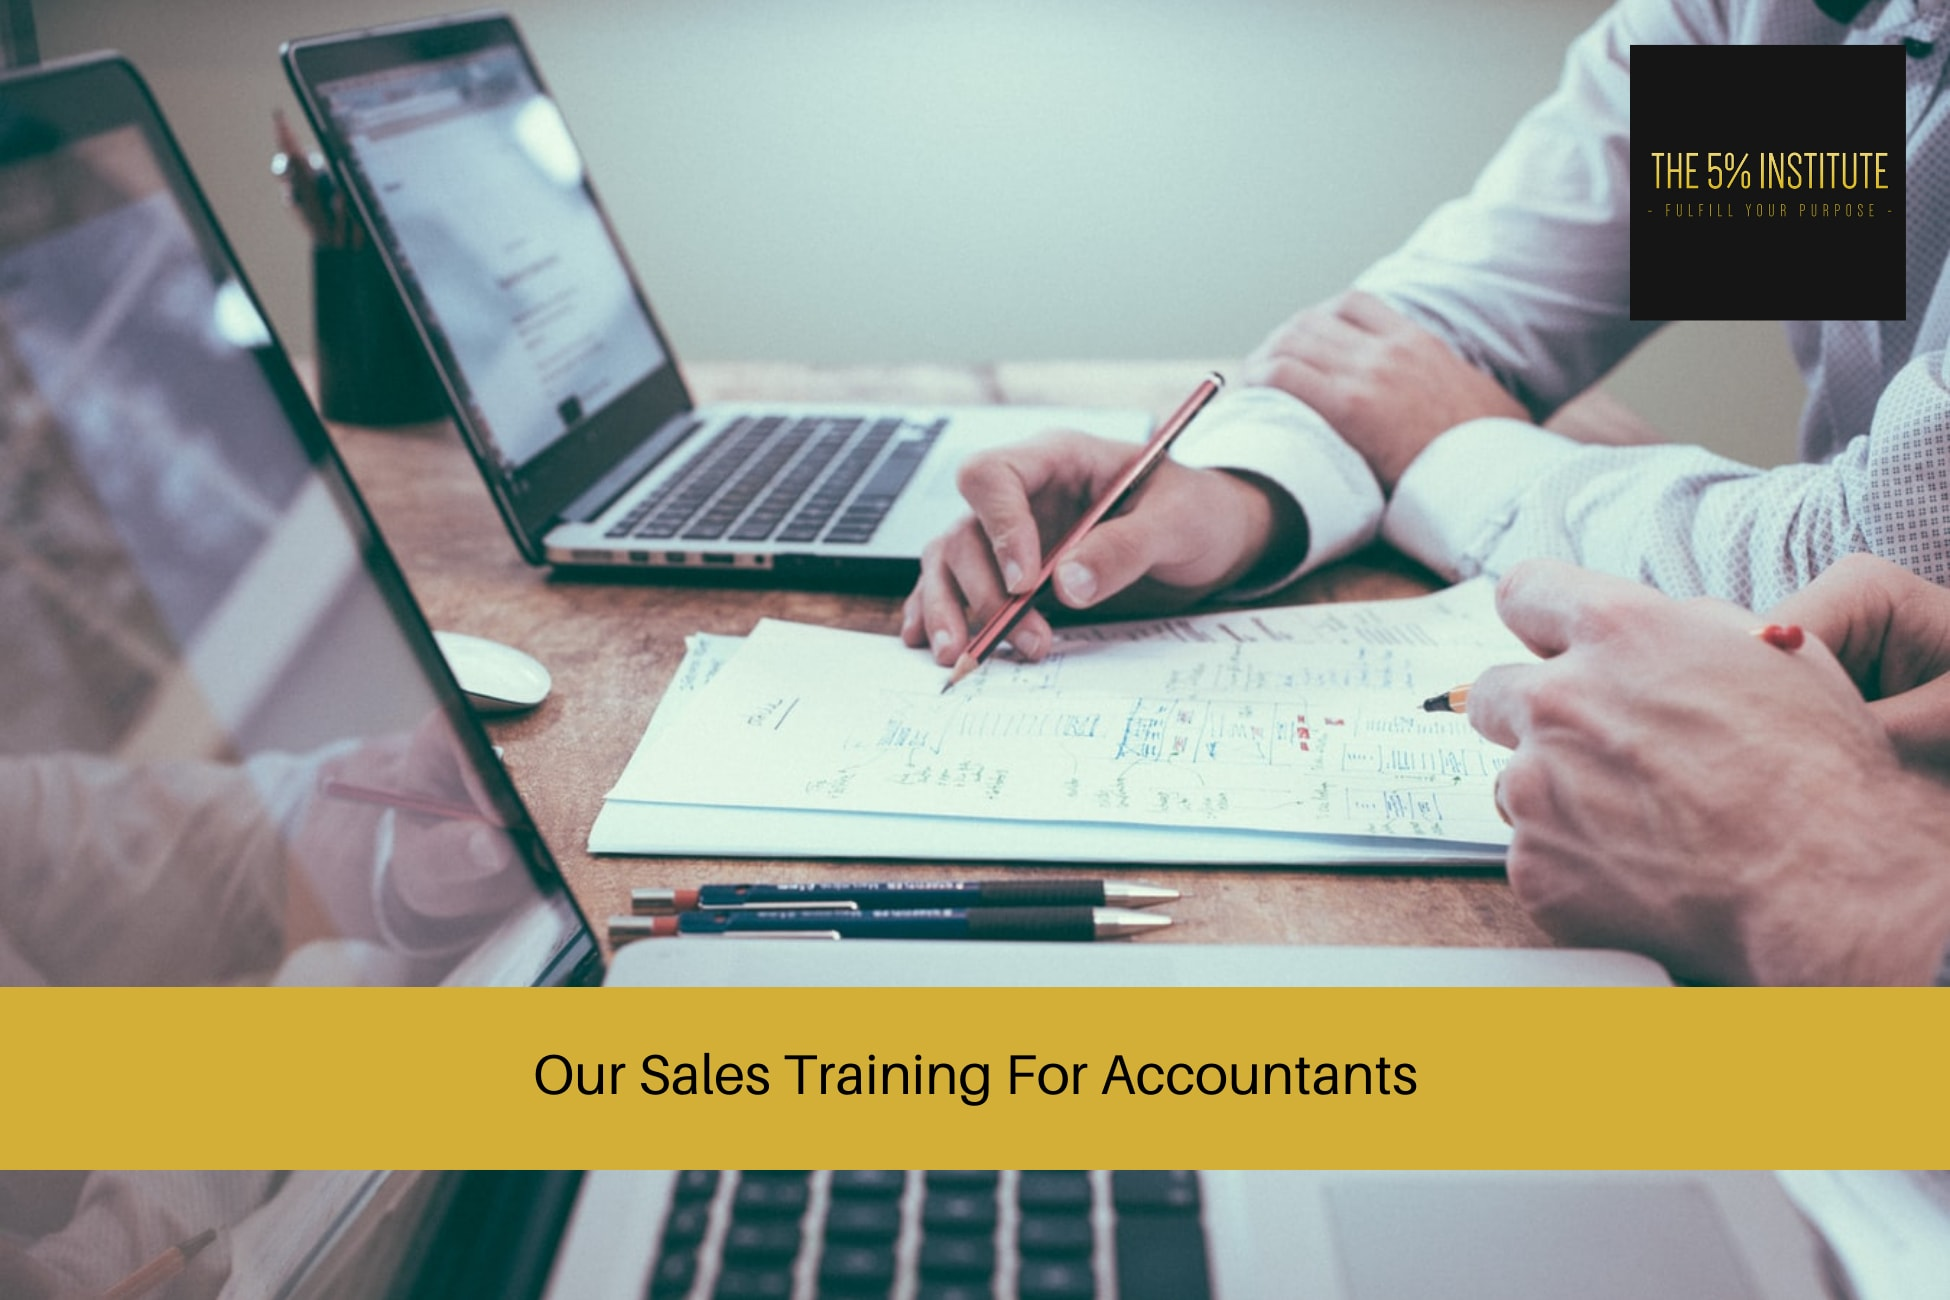 sales training for accountants